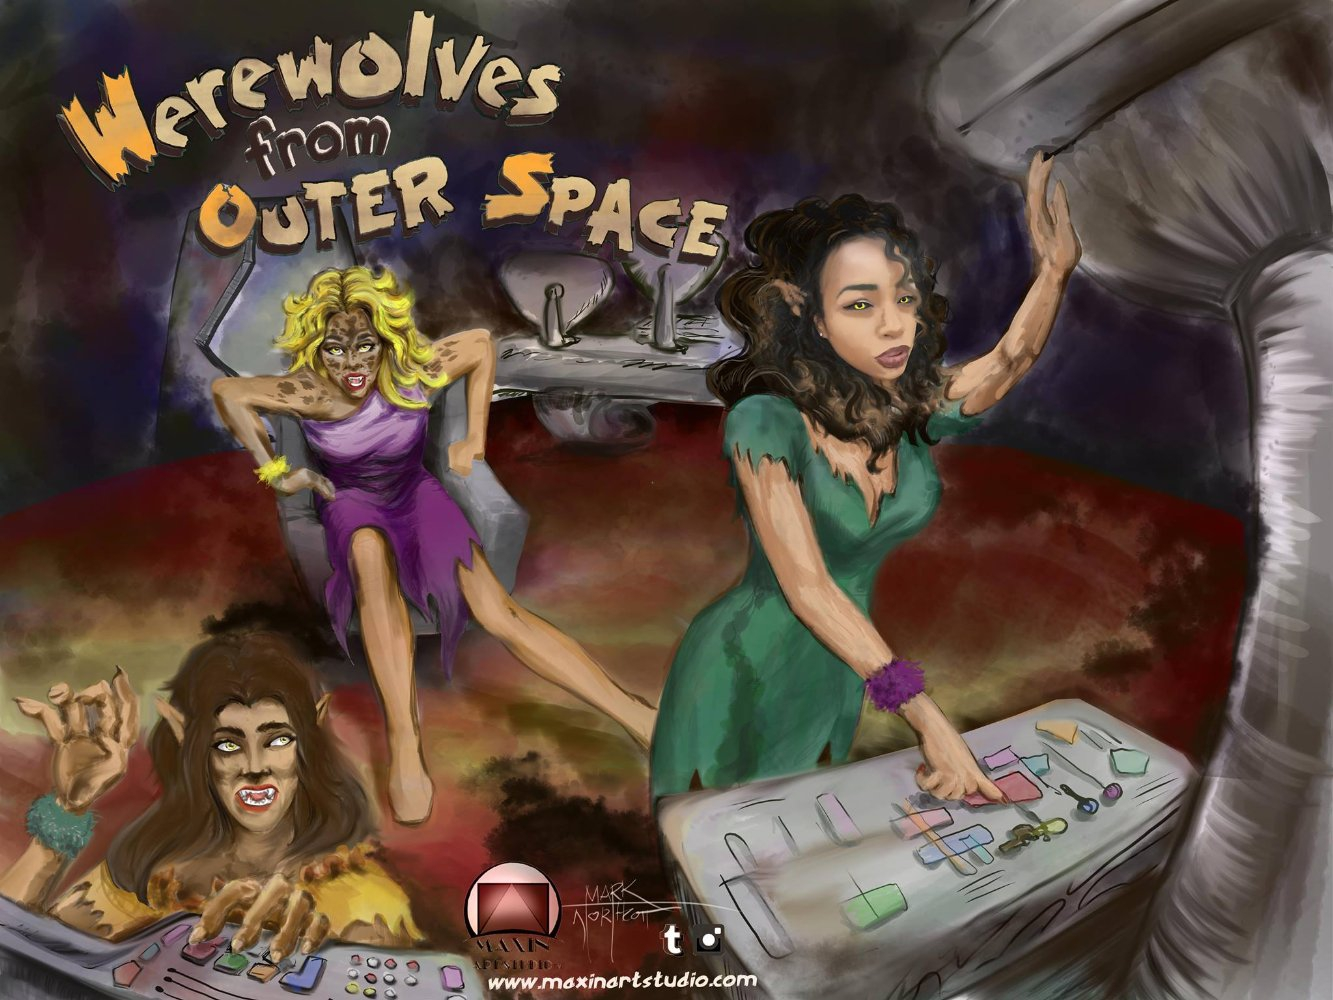 Werewolves from Outer Space (2017)